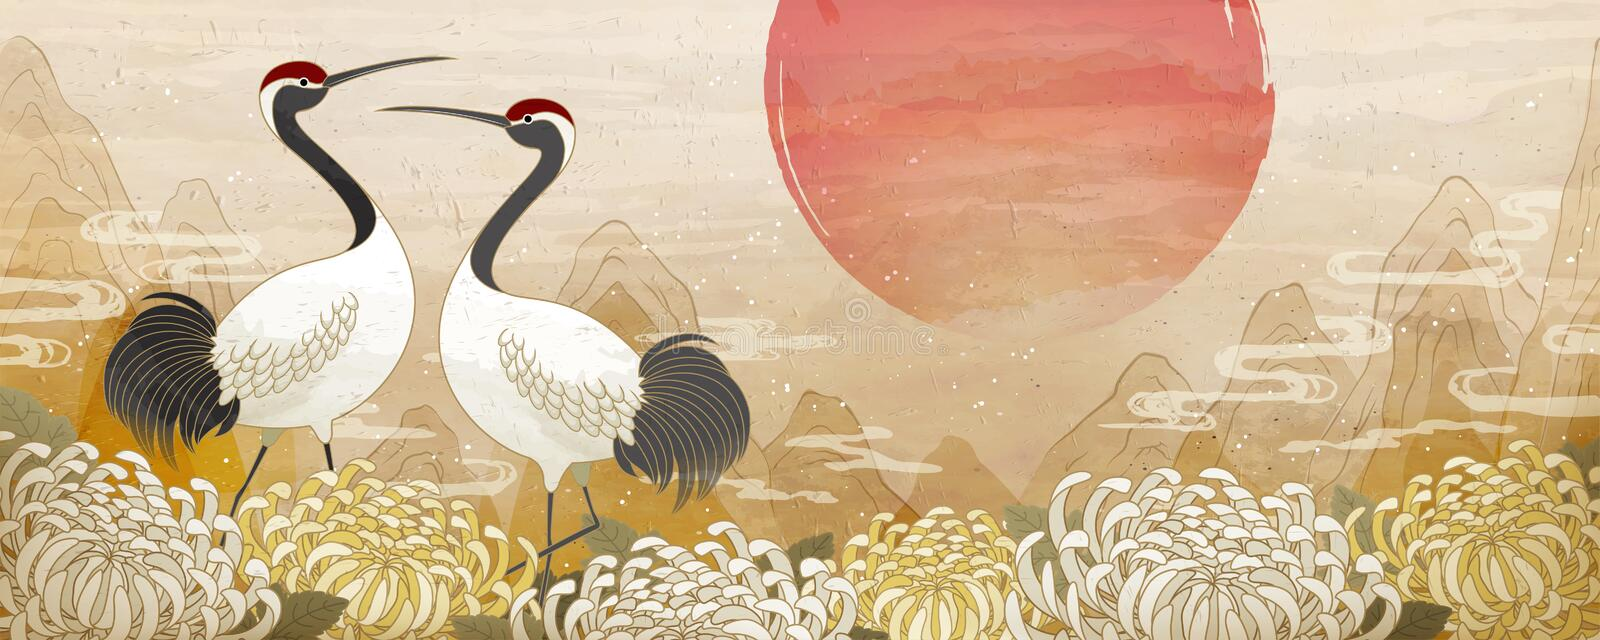 Double ninth festival design. Double ninth festival banner with symmetric red crowned crane and chrysanthemum background stock illustration